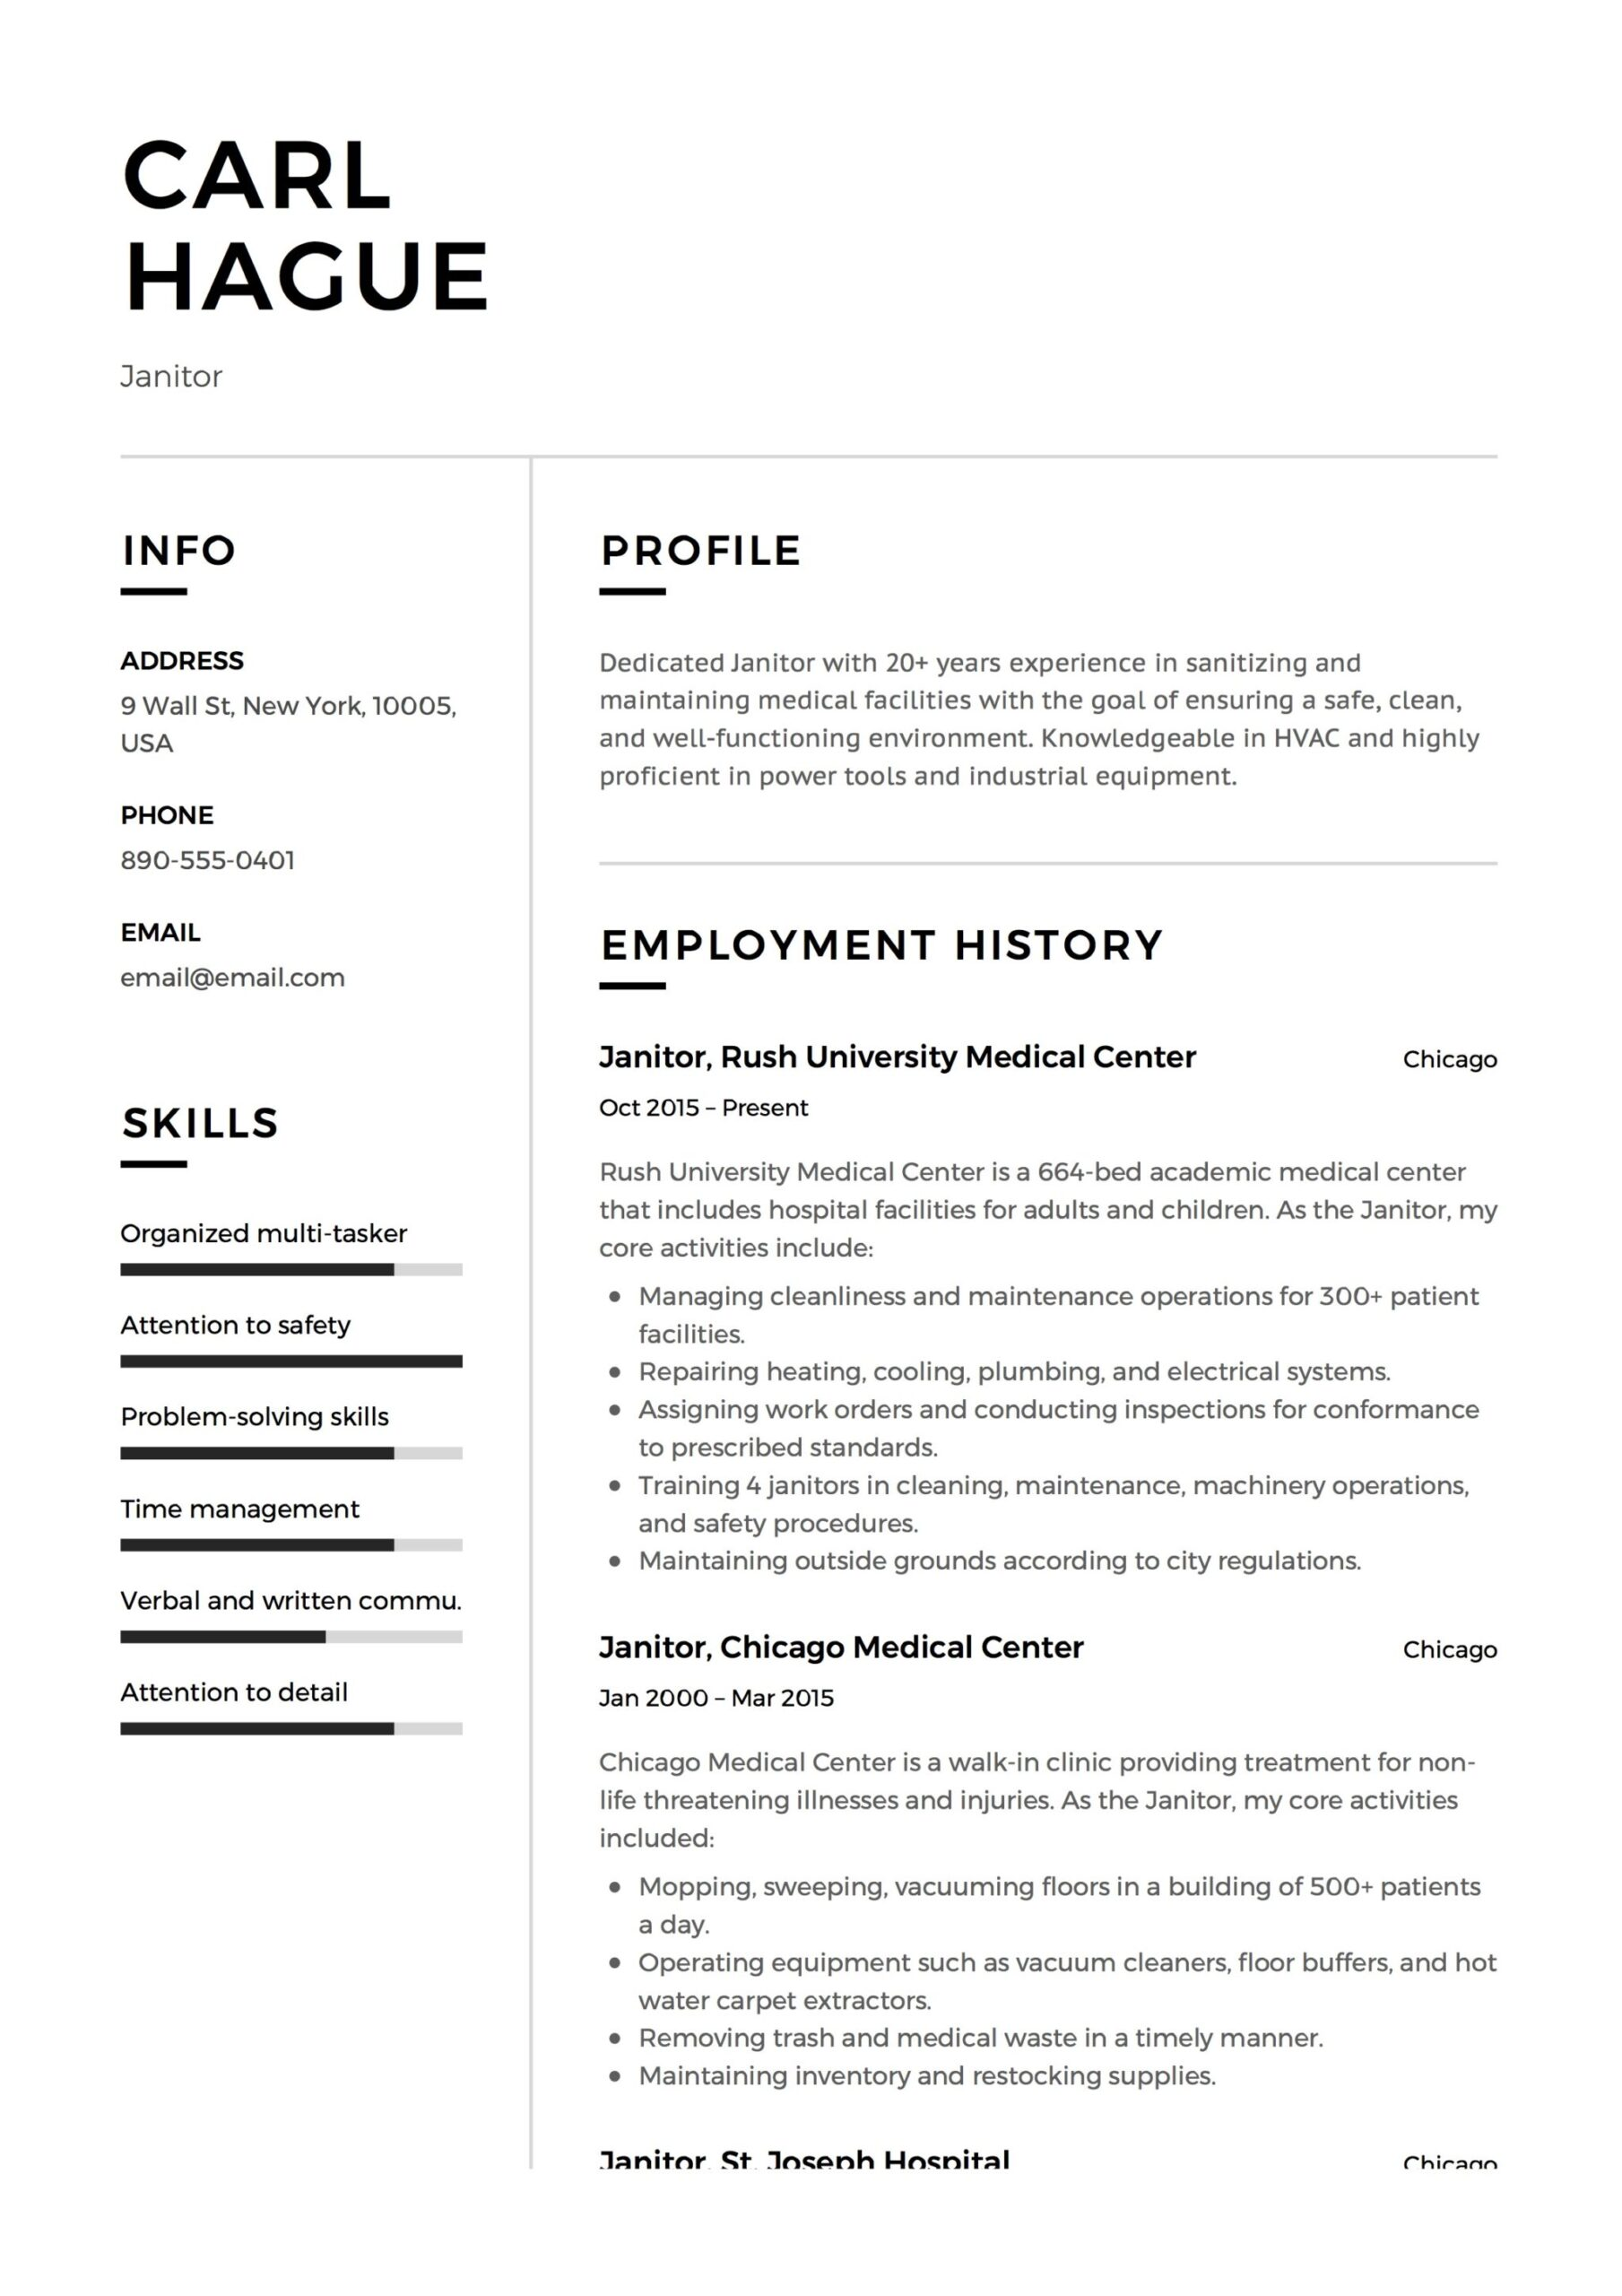 janitor resume writing guide examples pdf janitorial sample carl hague sewing machinist Resume Janitorial Sample Resume Examples